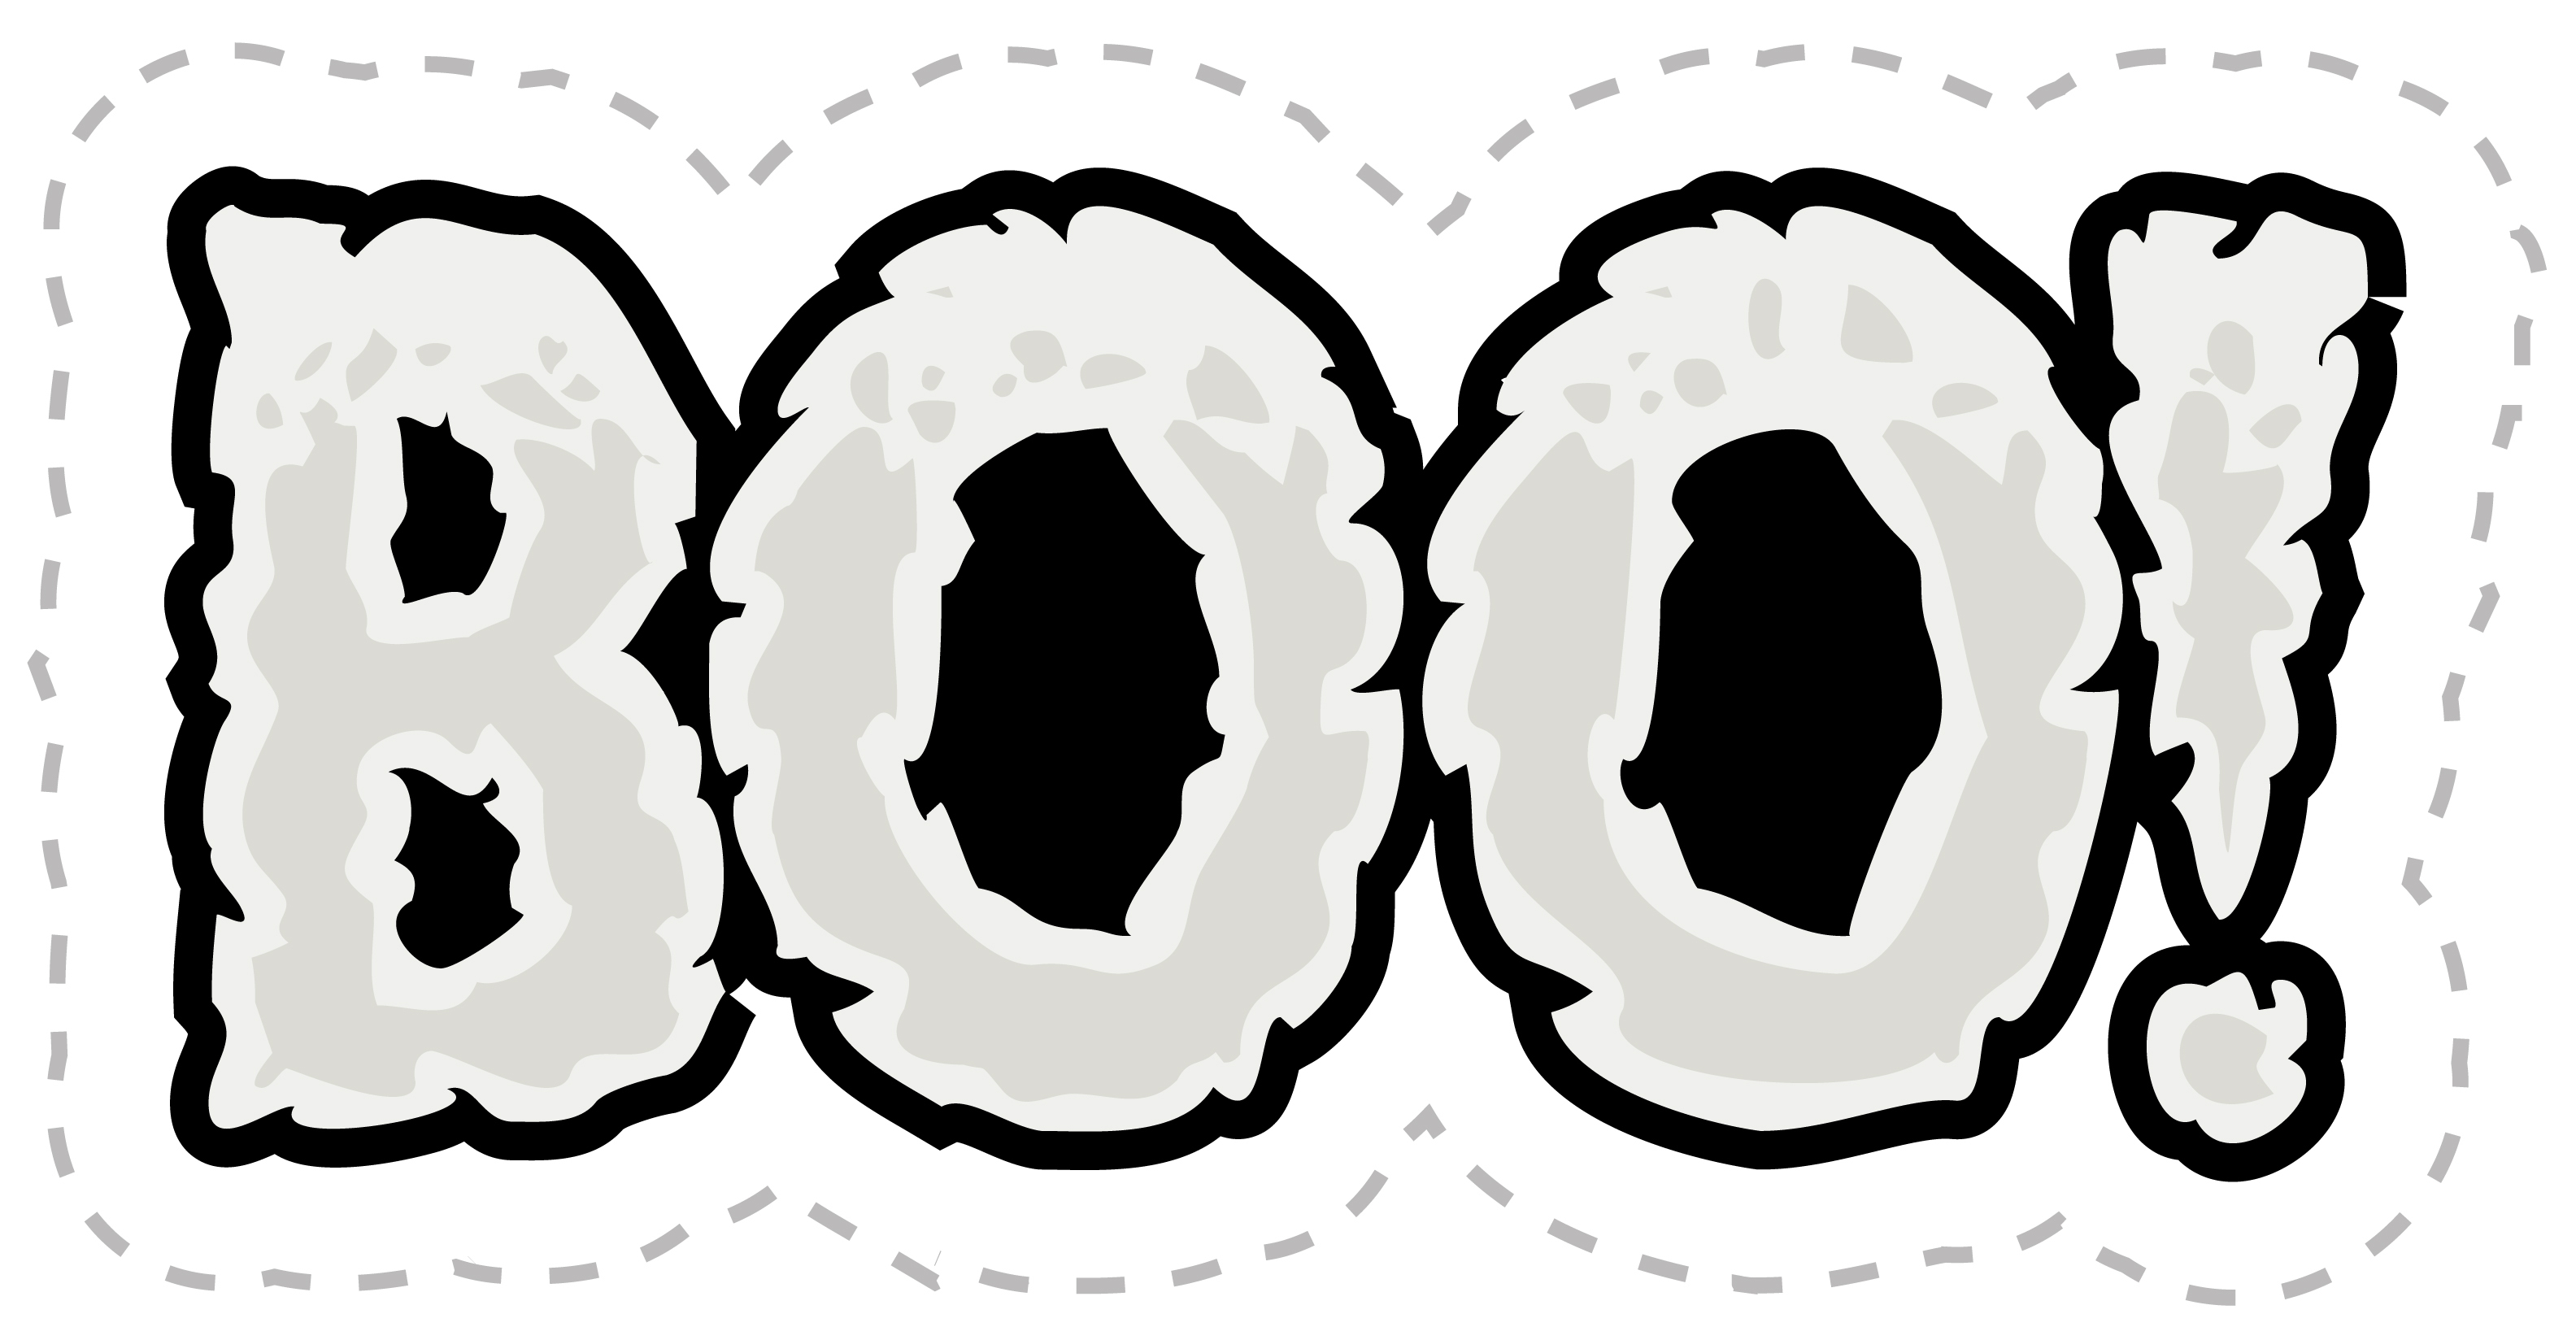 Printable Cut Out Halloween Decorations | Halloween Arts - Free Printable Halloween Decorations